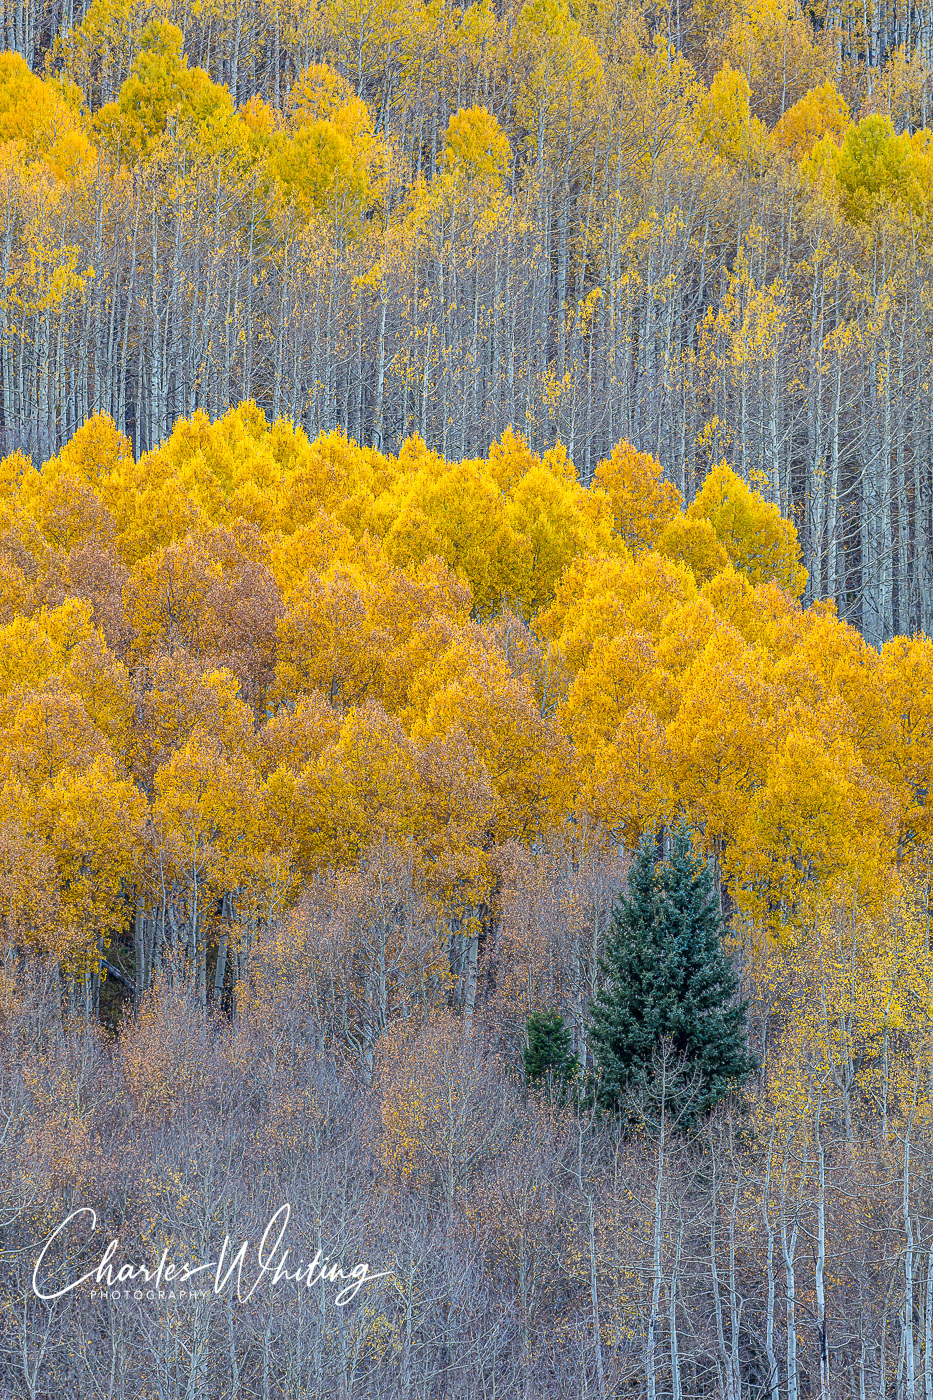 Aspens, Telluride, Colorado, photo